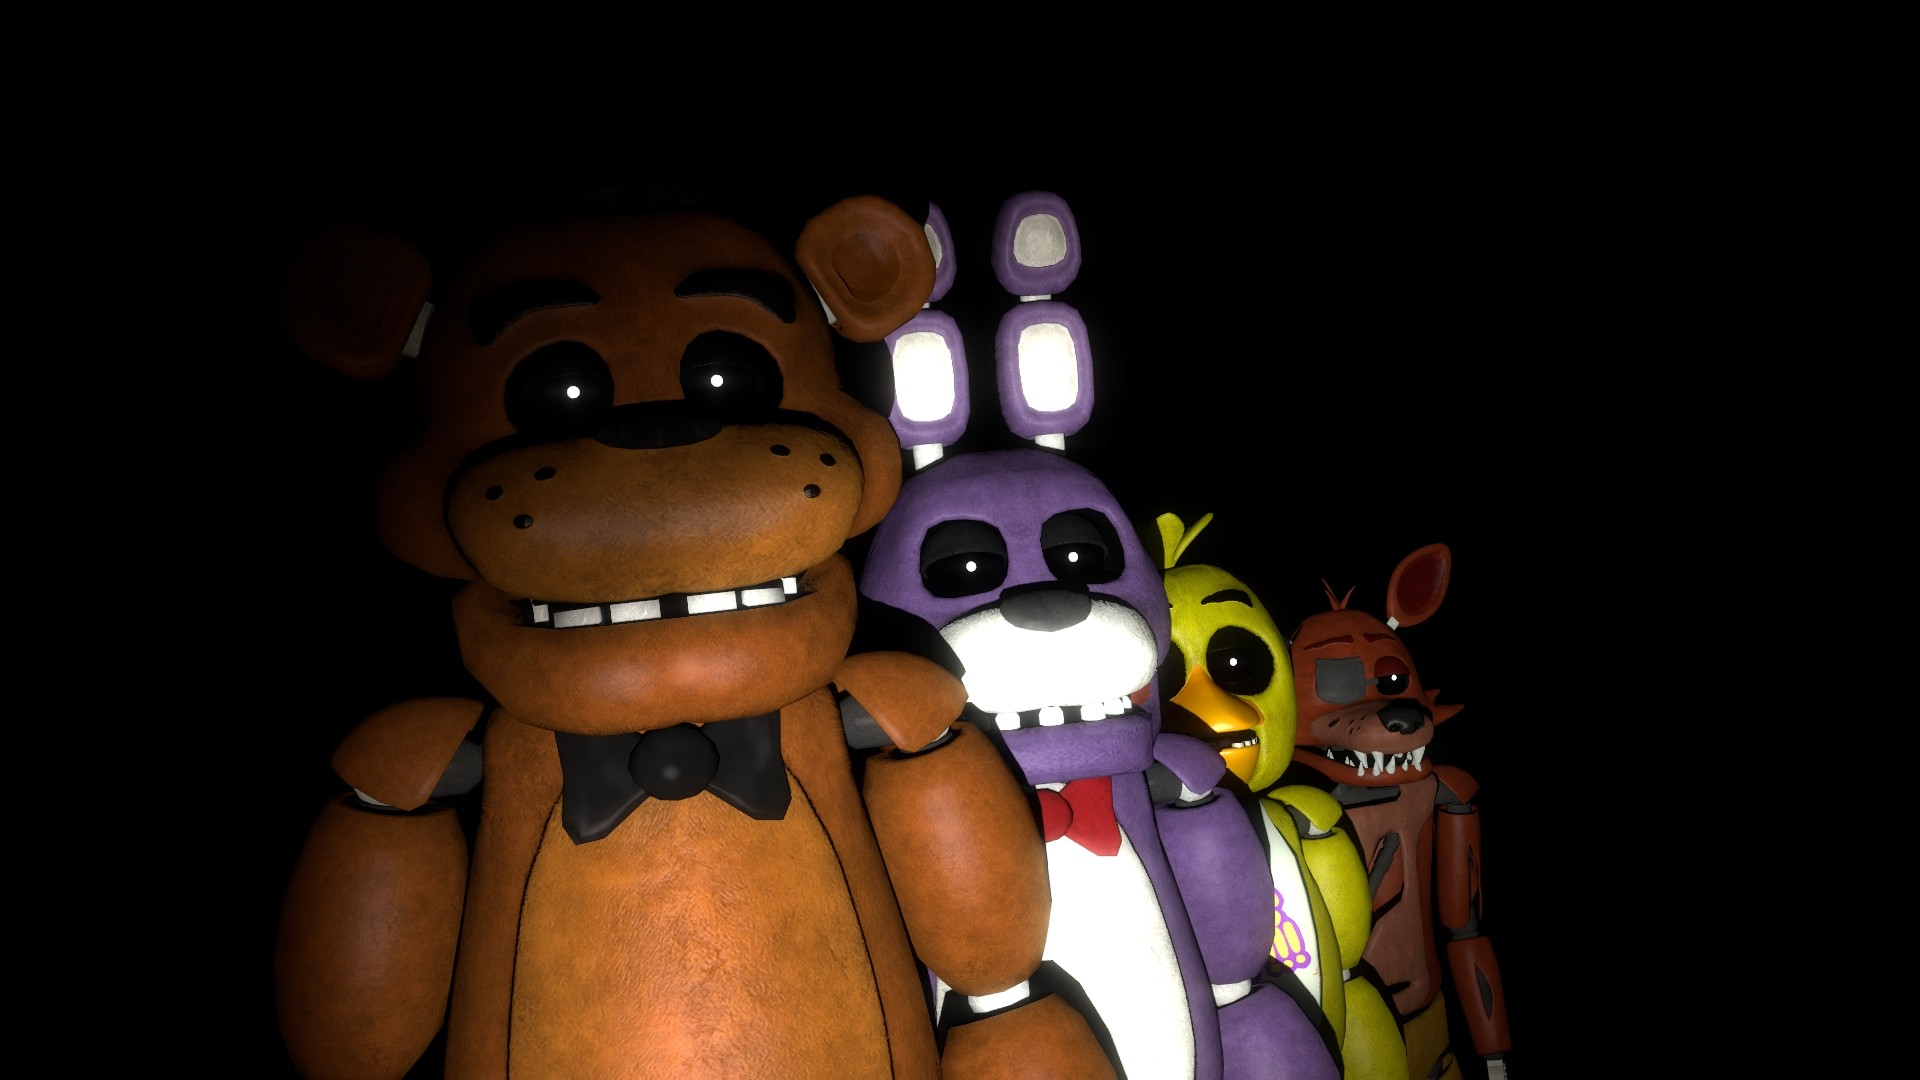 1920x1080 fnaf wallpaper B by datfurryoverthere on DeviantArt